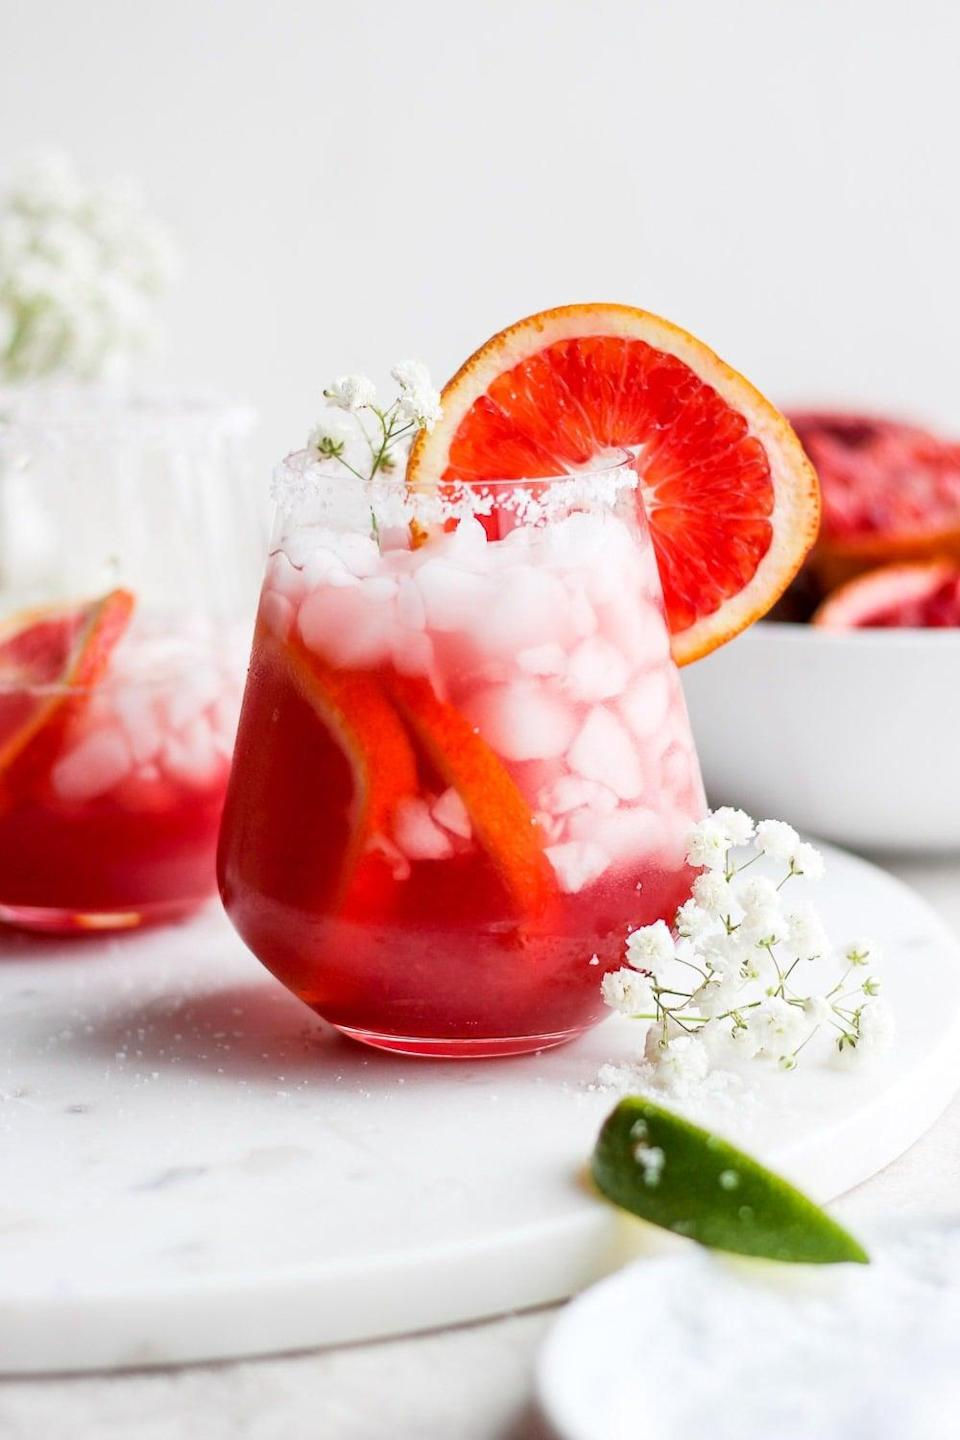 """<p>Give happy hour a whole new meaning when you sip on these blood-orange margaritas. They're easy to make, super refreshing, and unlike any marg you've ever had before.</p> <p><strong>Get the recipe</strong>: <a href=""""https://fitfoodiefinds.com/blood-orange-margarita/"""" class=""""link rapid-noclick-resp"""" rel=""""nofollow noopener"""" target=""""_blank"""" data-ylk=""""slk:blood orange margarita"""">blood orange margarita</a></p>"""